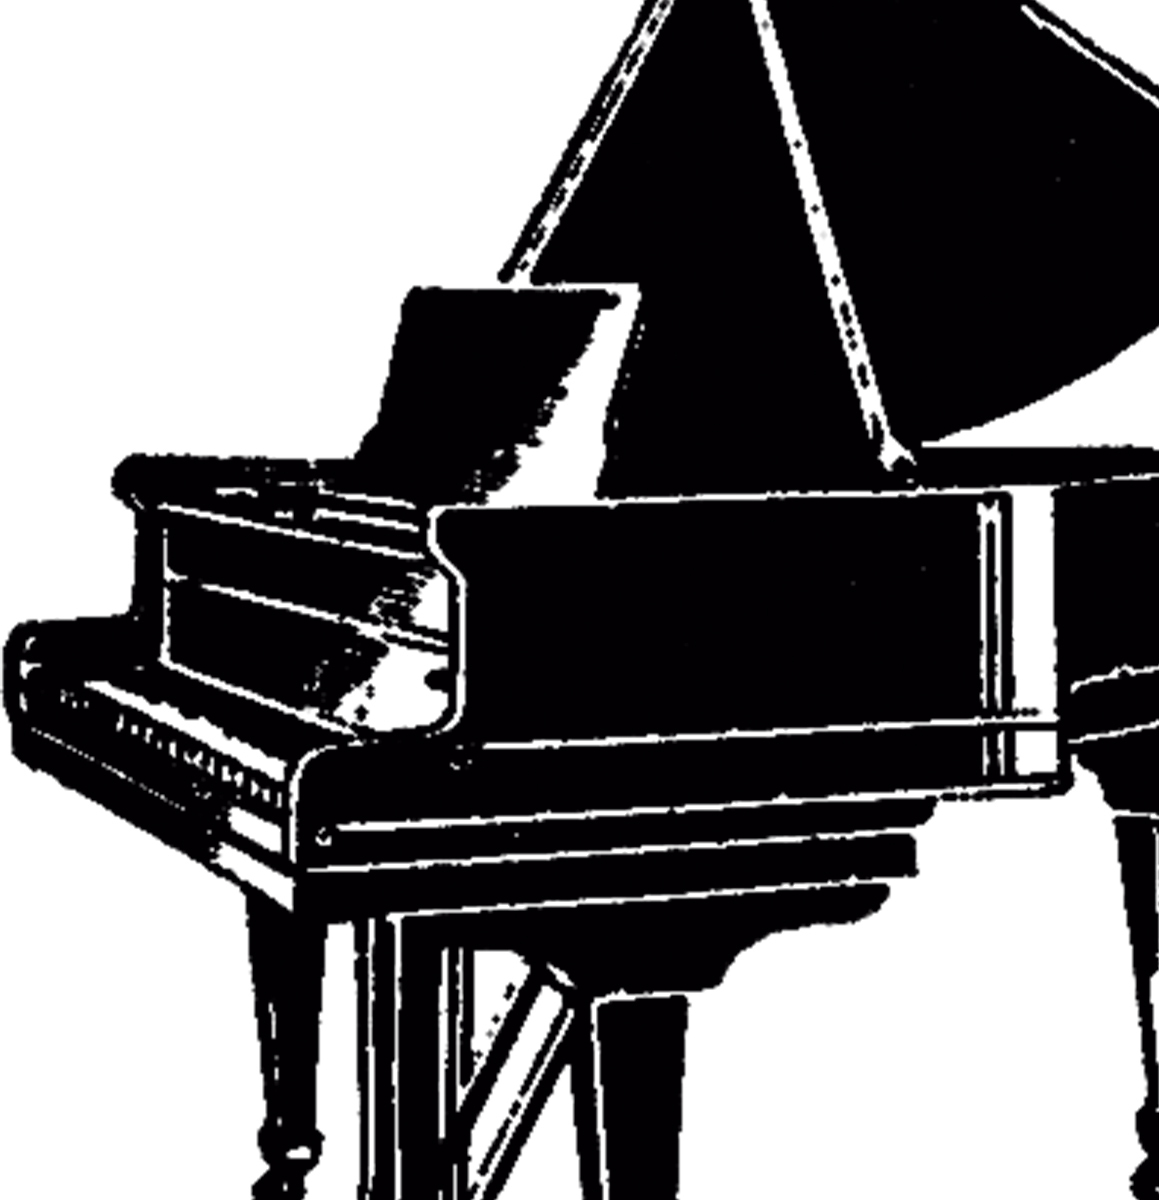 grand piano drawing piano clipart outline piano outline transparent free for grand drawing piano